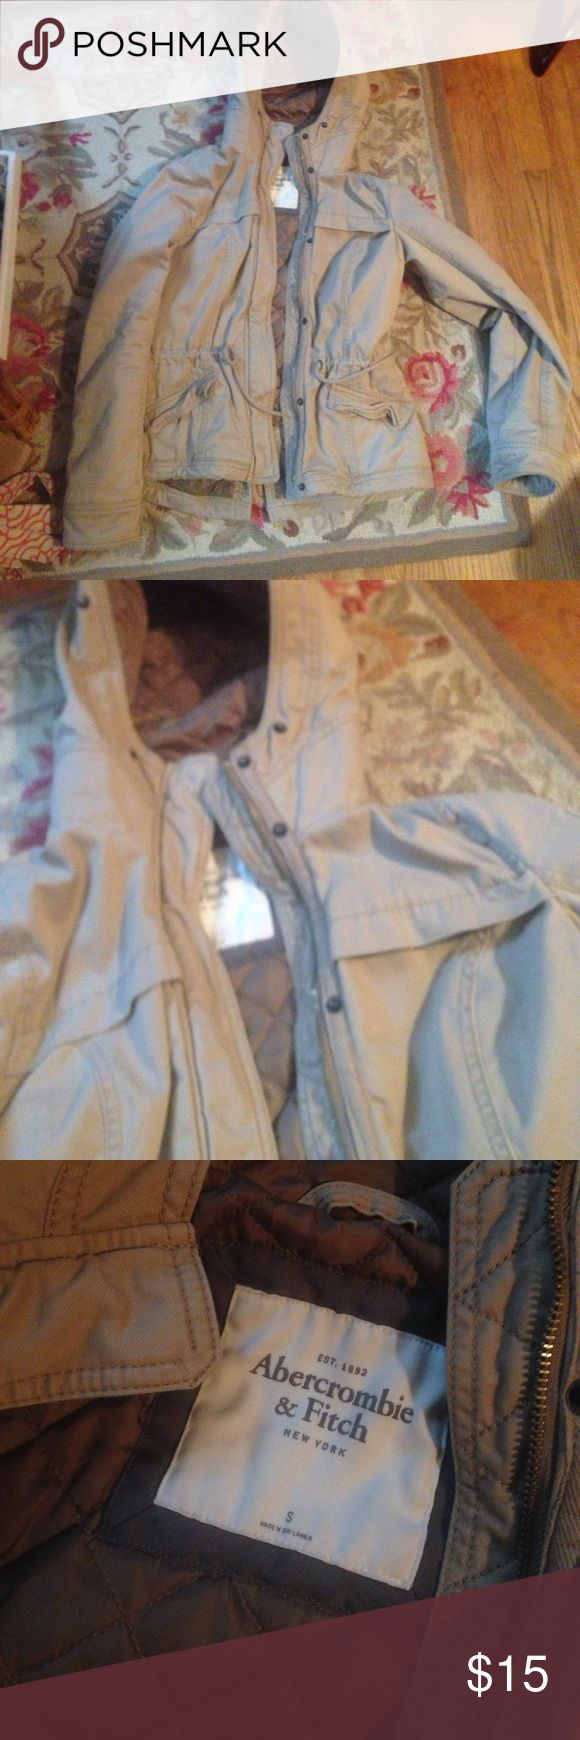 Abercrombie and fitch tan parka Like new very warm true to size Abercrombie & Fitch Jackets & Coats